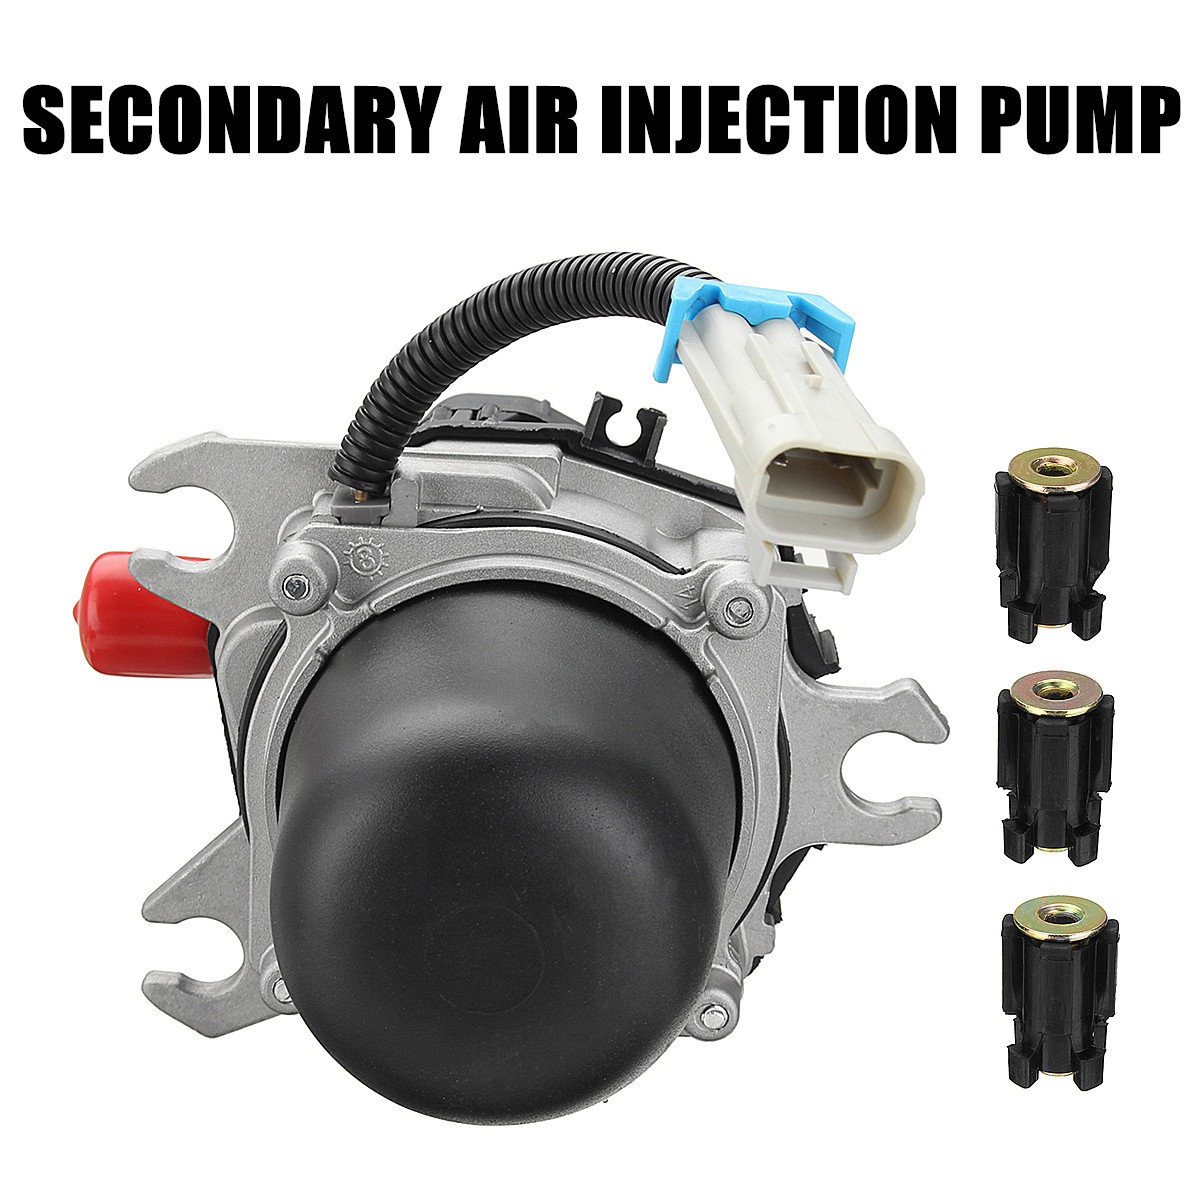 Здесь можно купить  Secondary Air Injection Pump for Chevrolet S10 Blazer/GMC Sonoma Jimmy 4.3L 12560095 215364 AIP18 AC215417 11.4x16x18cm  Автомобили и Мотоциклы